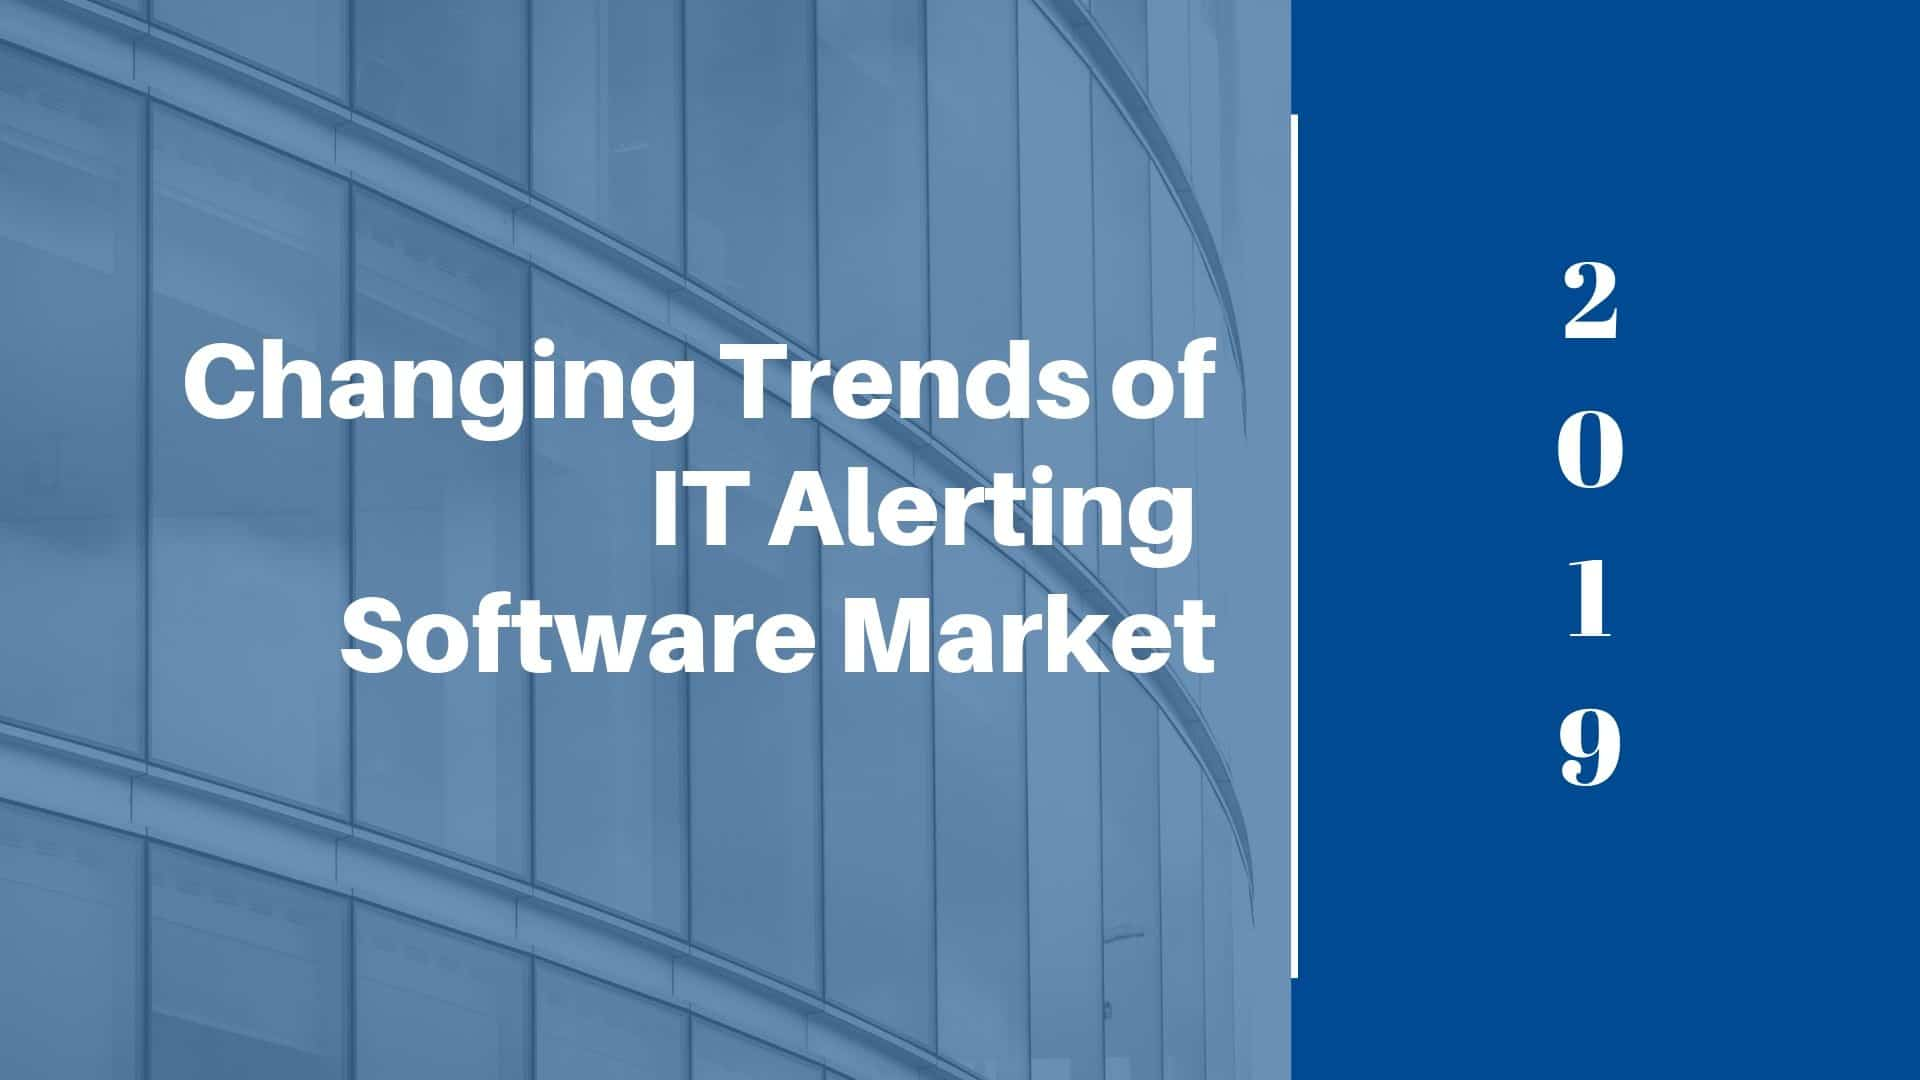 Changing Trends of IT Alerting Software Market 2019